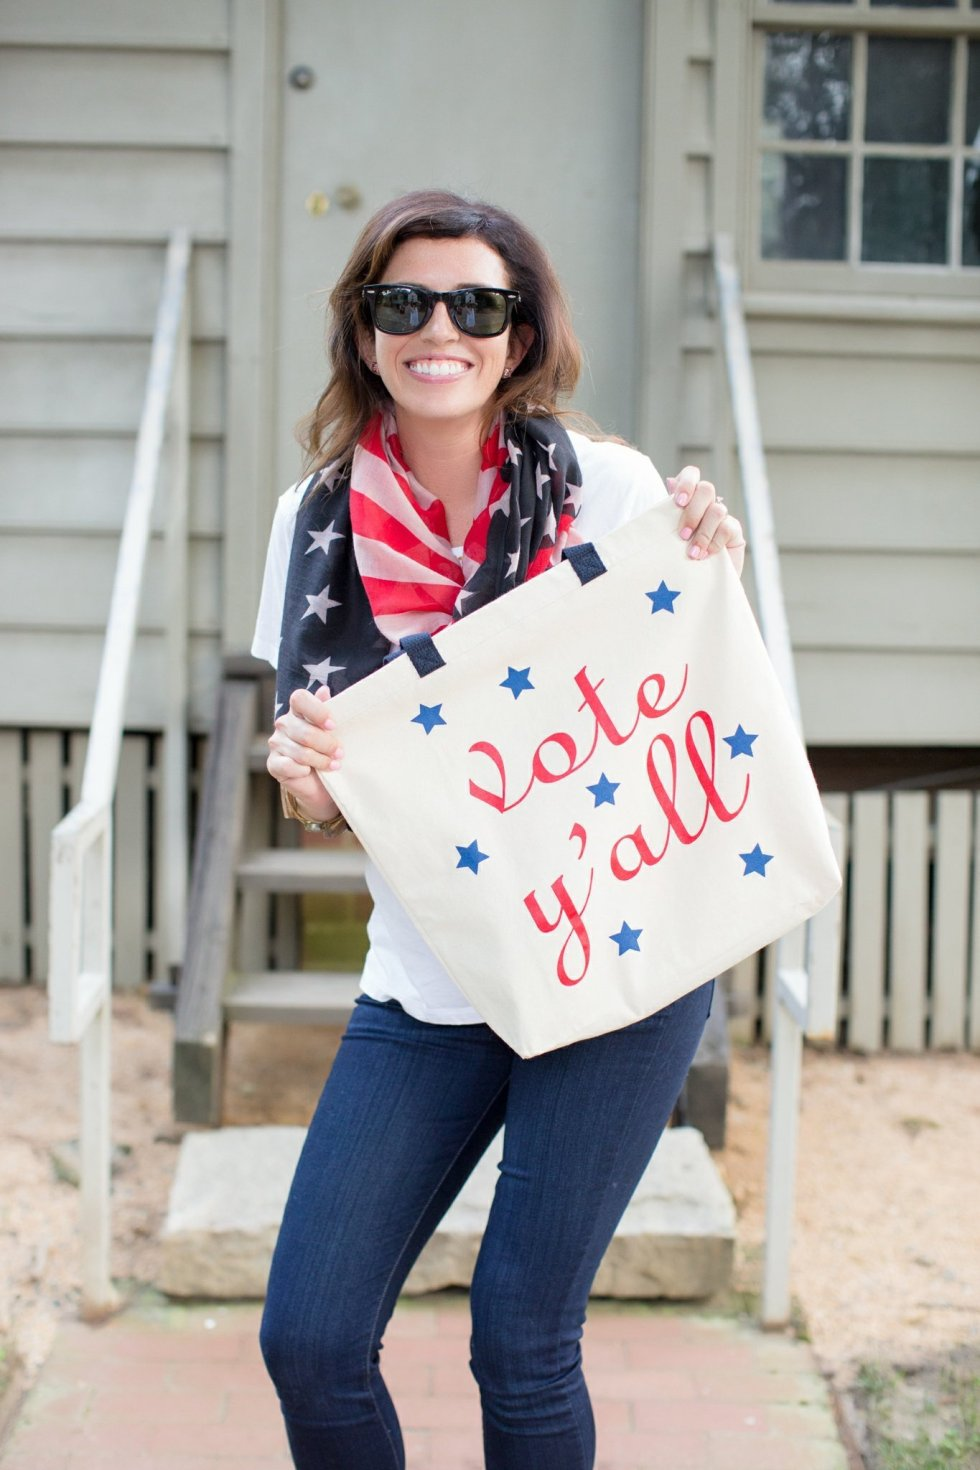 Civic Engagement Fashion Top Picks for Women - I'm Fixin' To - @mbg0112 | Civic Engagement by popular N.C. fashion blog, I'm Fixin' To: image of a woman wearing a American Flag scarf, white t-shirt, jeans, and holding a Draper James Vote Y'all tote.